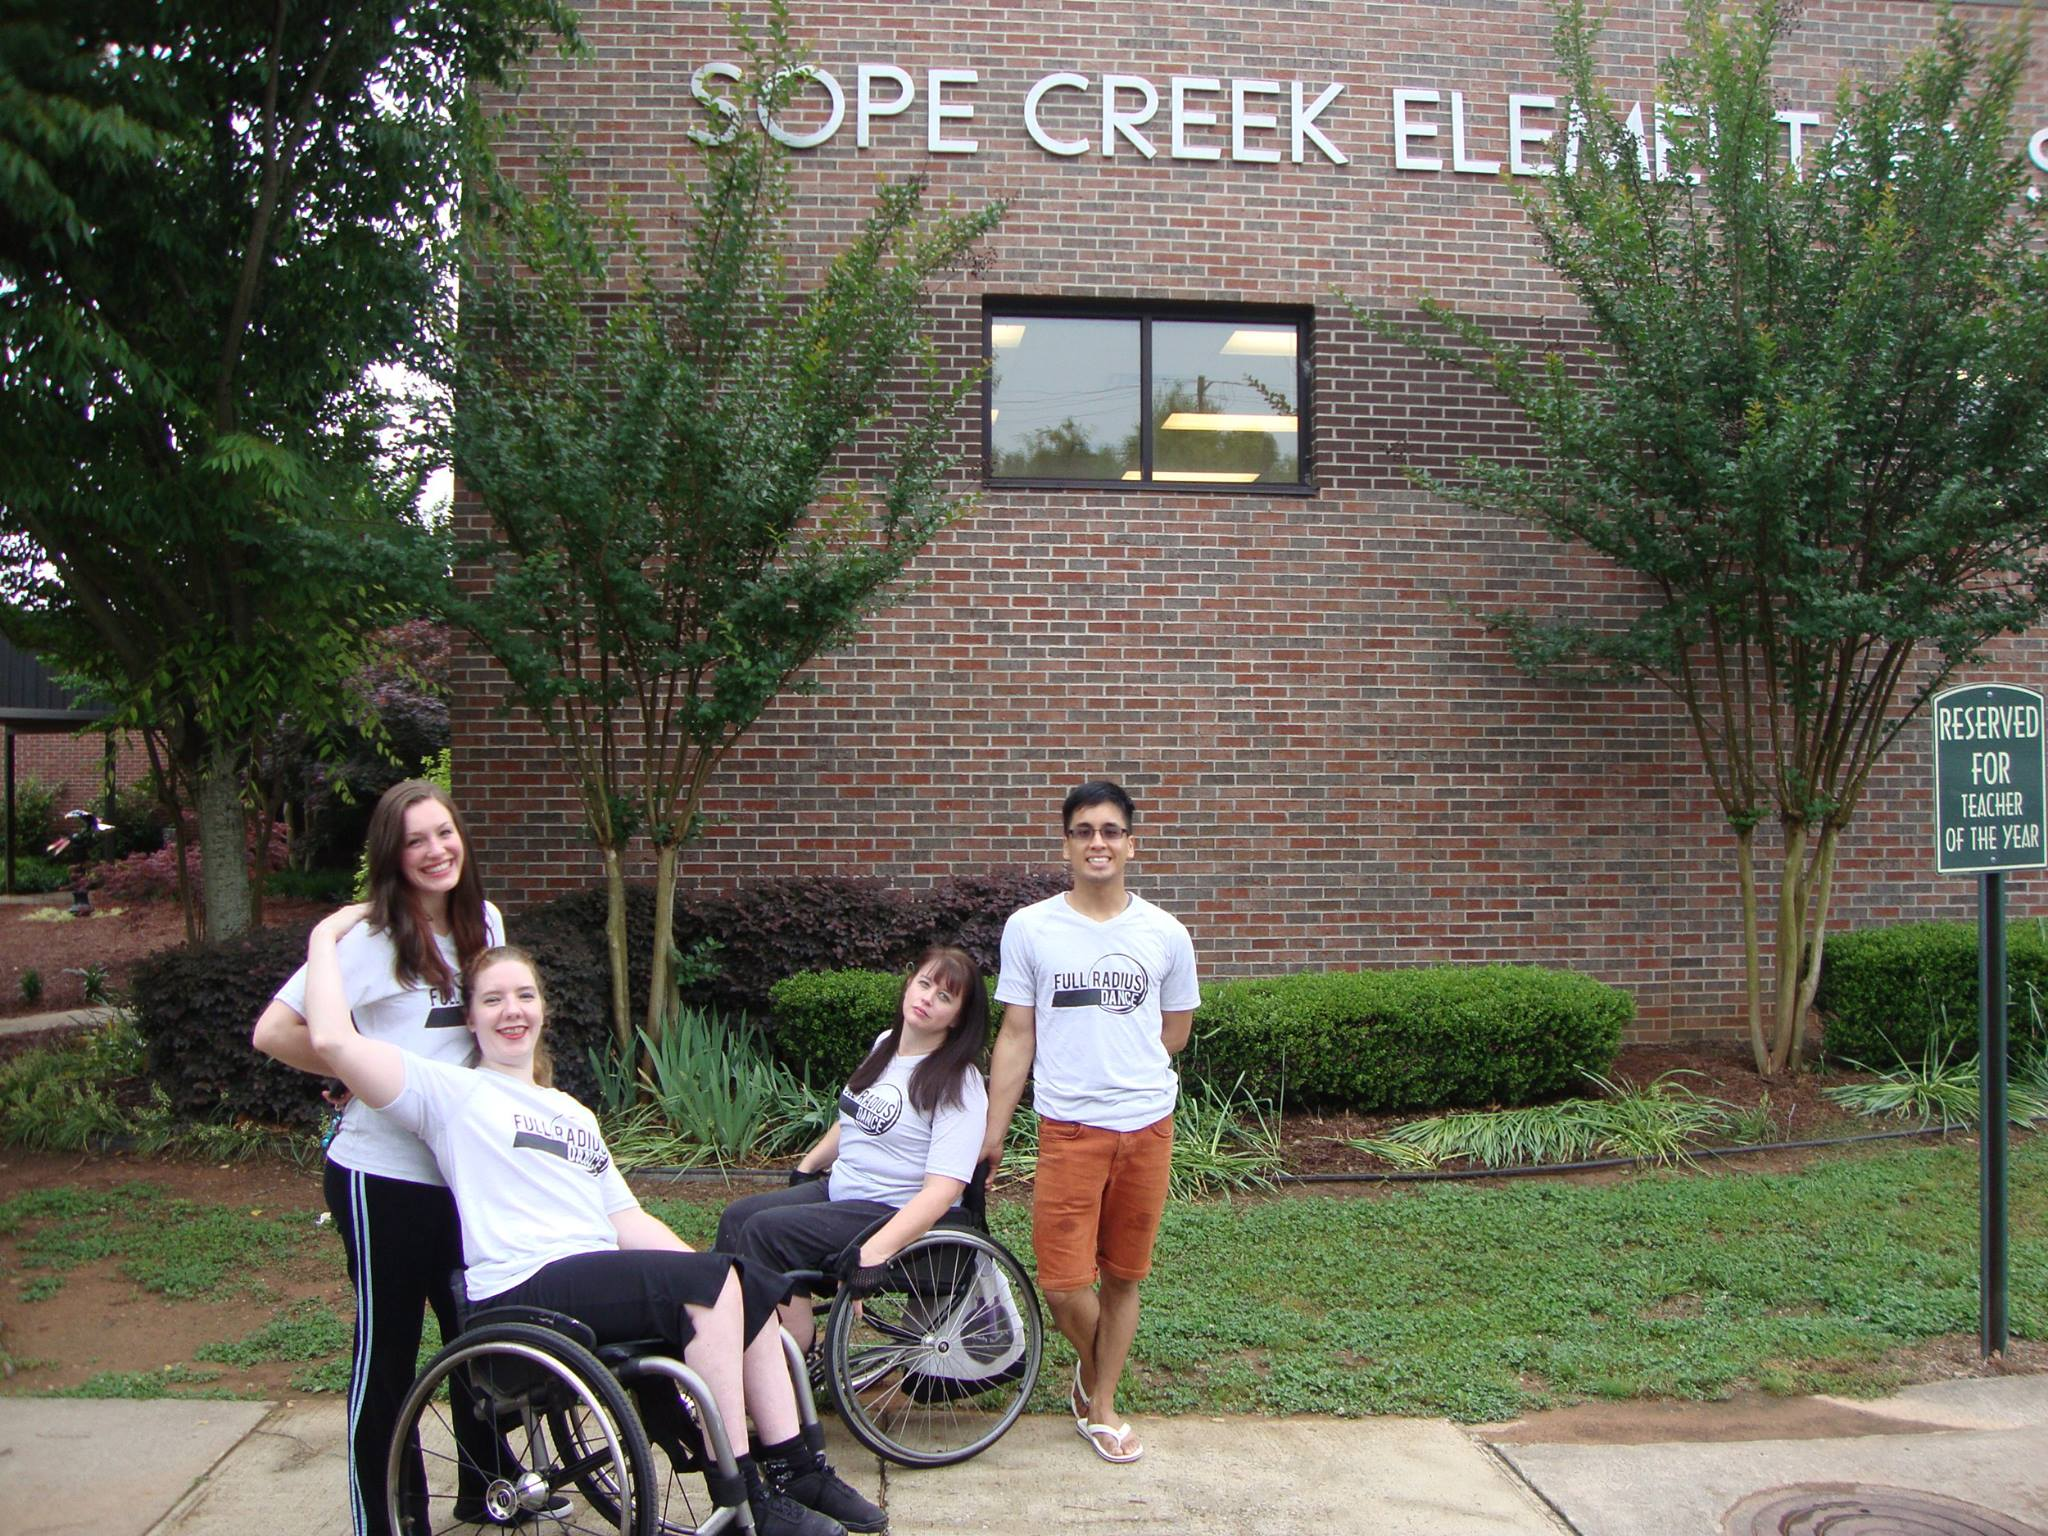 Four dancers, two in wheel chairs, pose outside of Sope Creek Elementary School